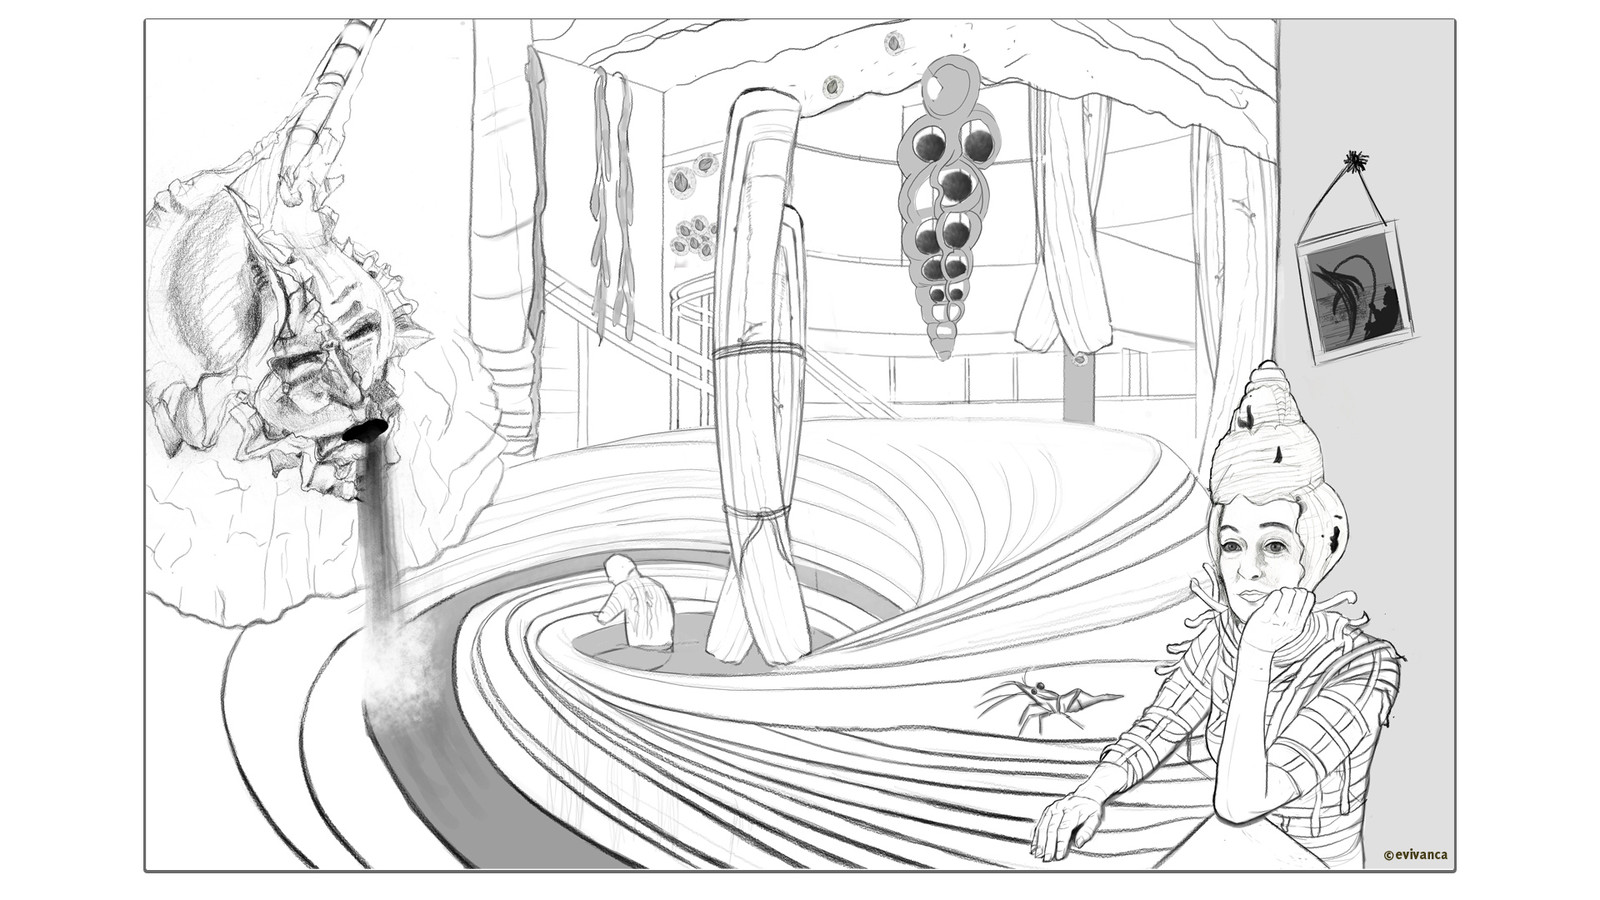 Study for an interior design for my Calusa shell city - a bathhouse - picture 1 - frame1